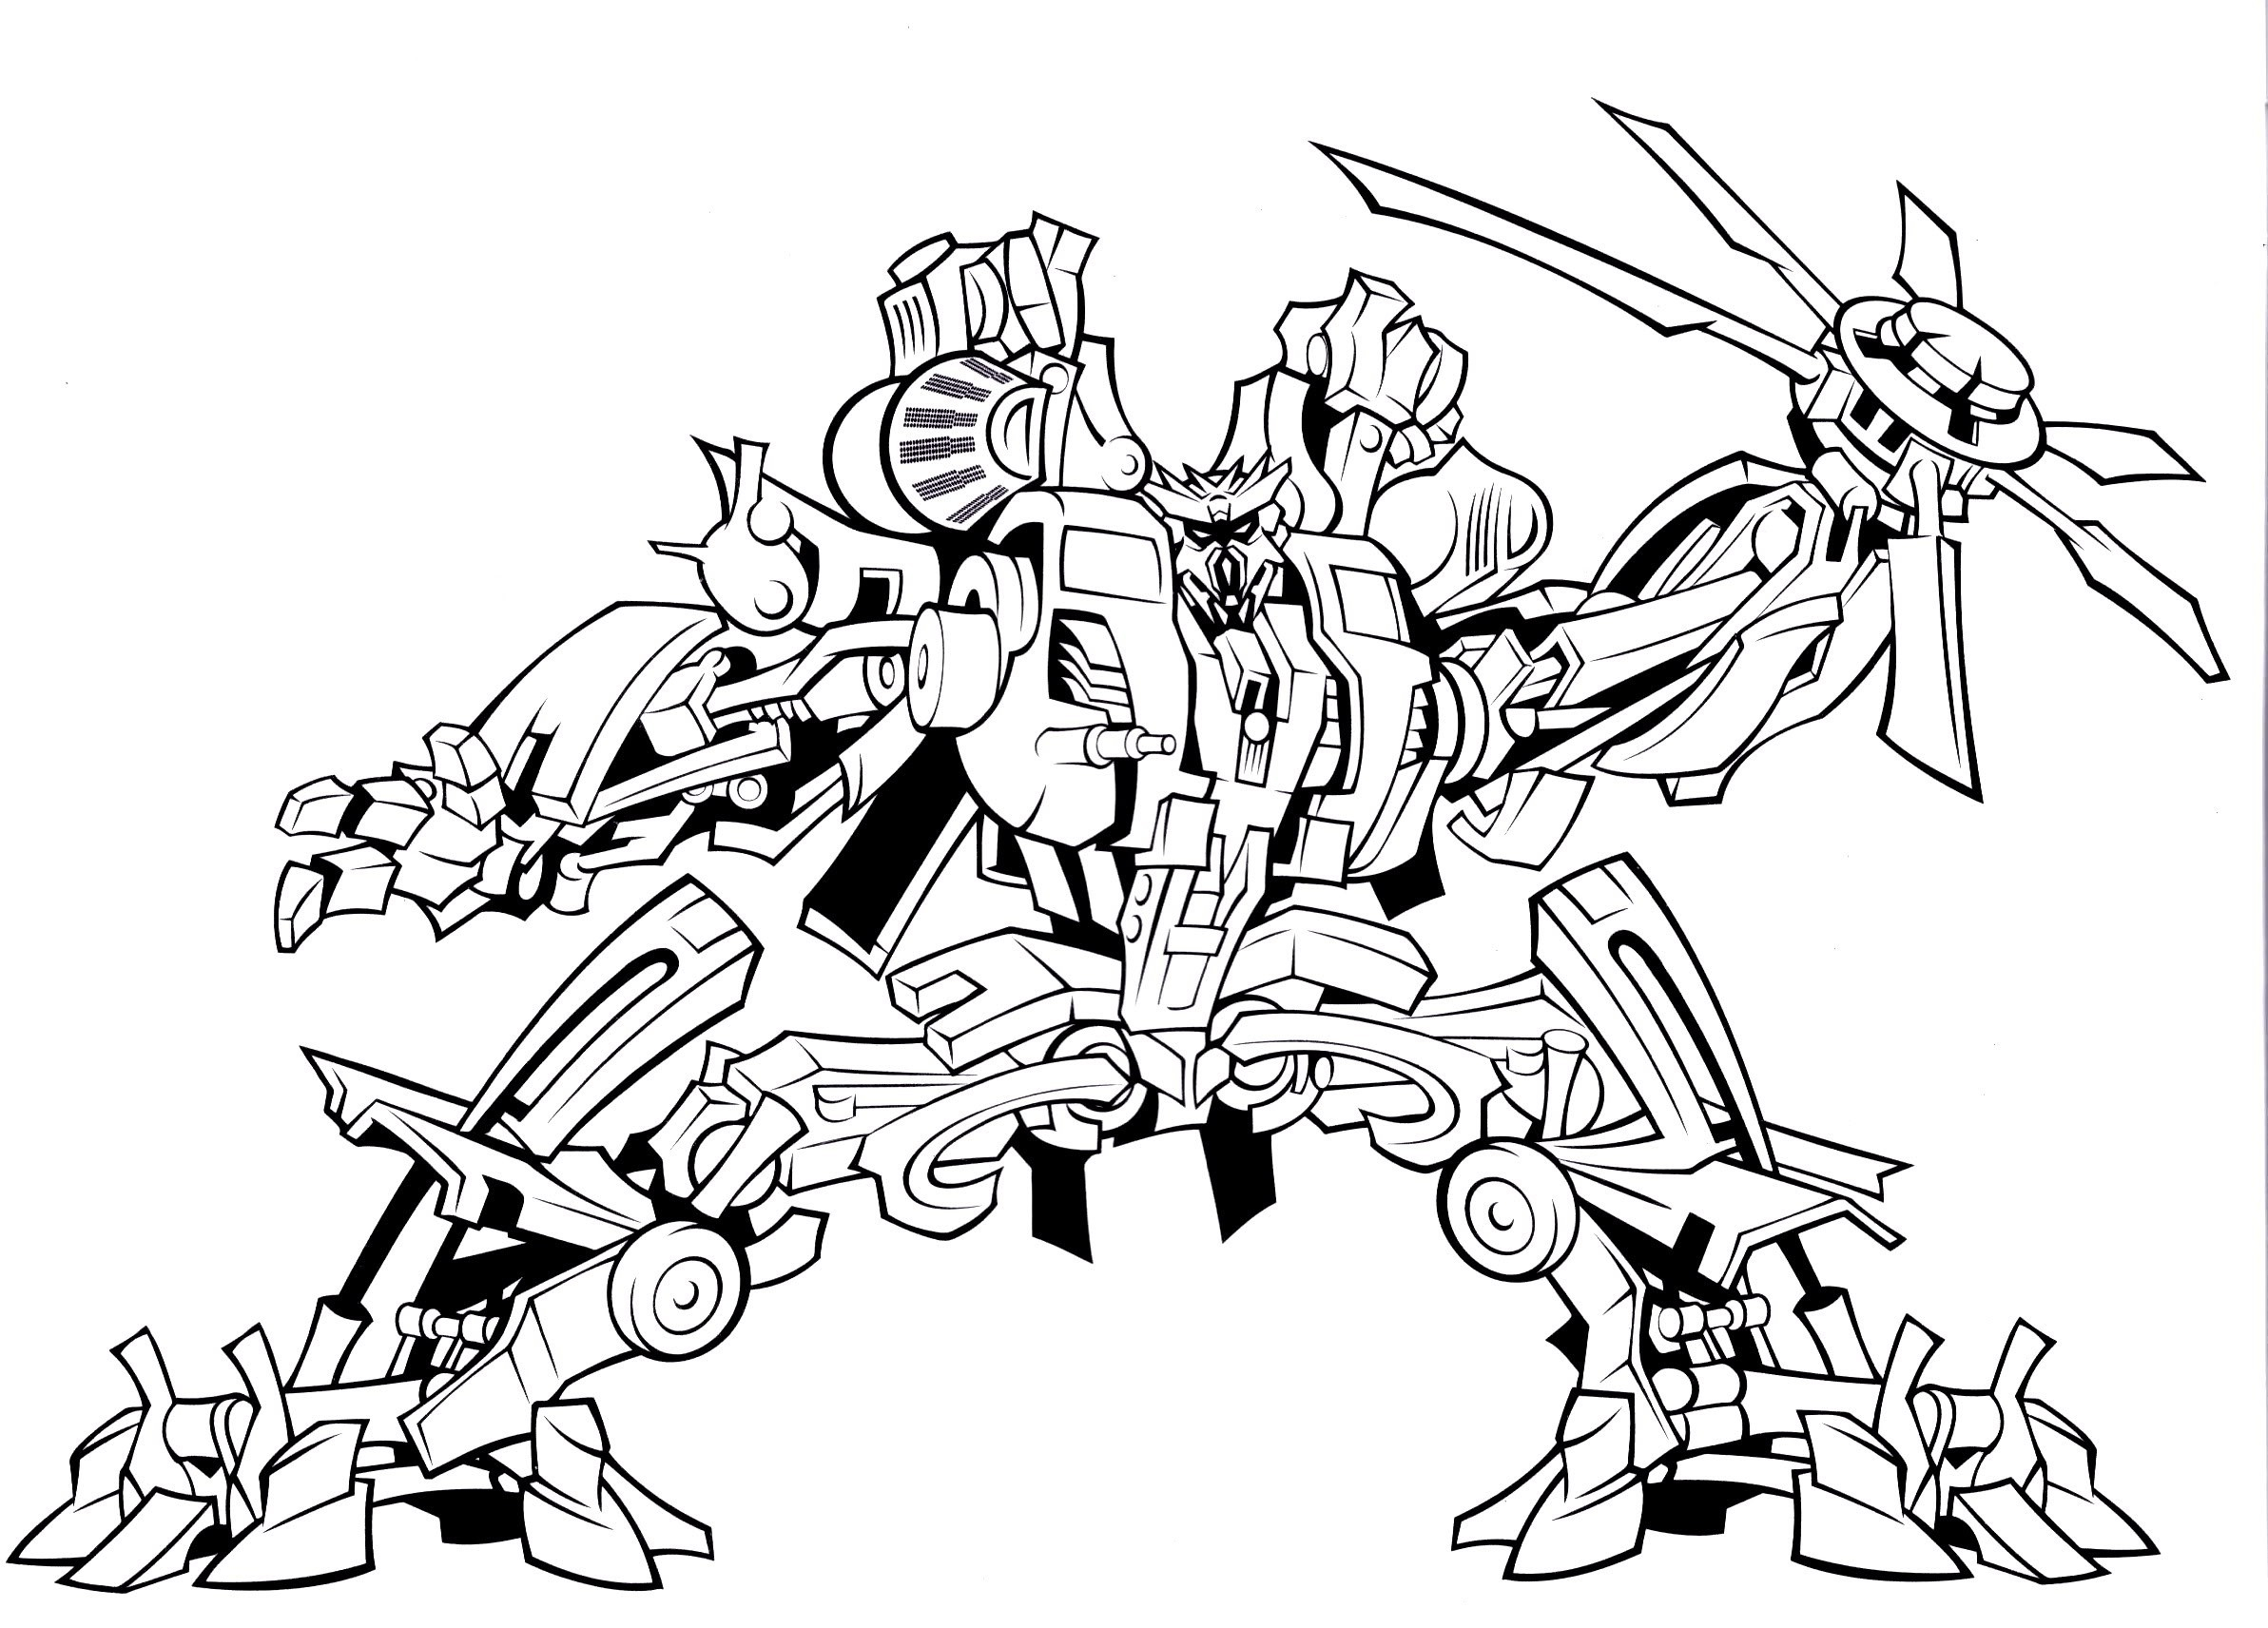 Coloring Pages ~ Free Transformer Coloring Pages Transformers To - Transformers 4 Coloring Pages Free Printable